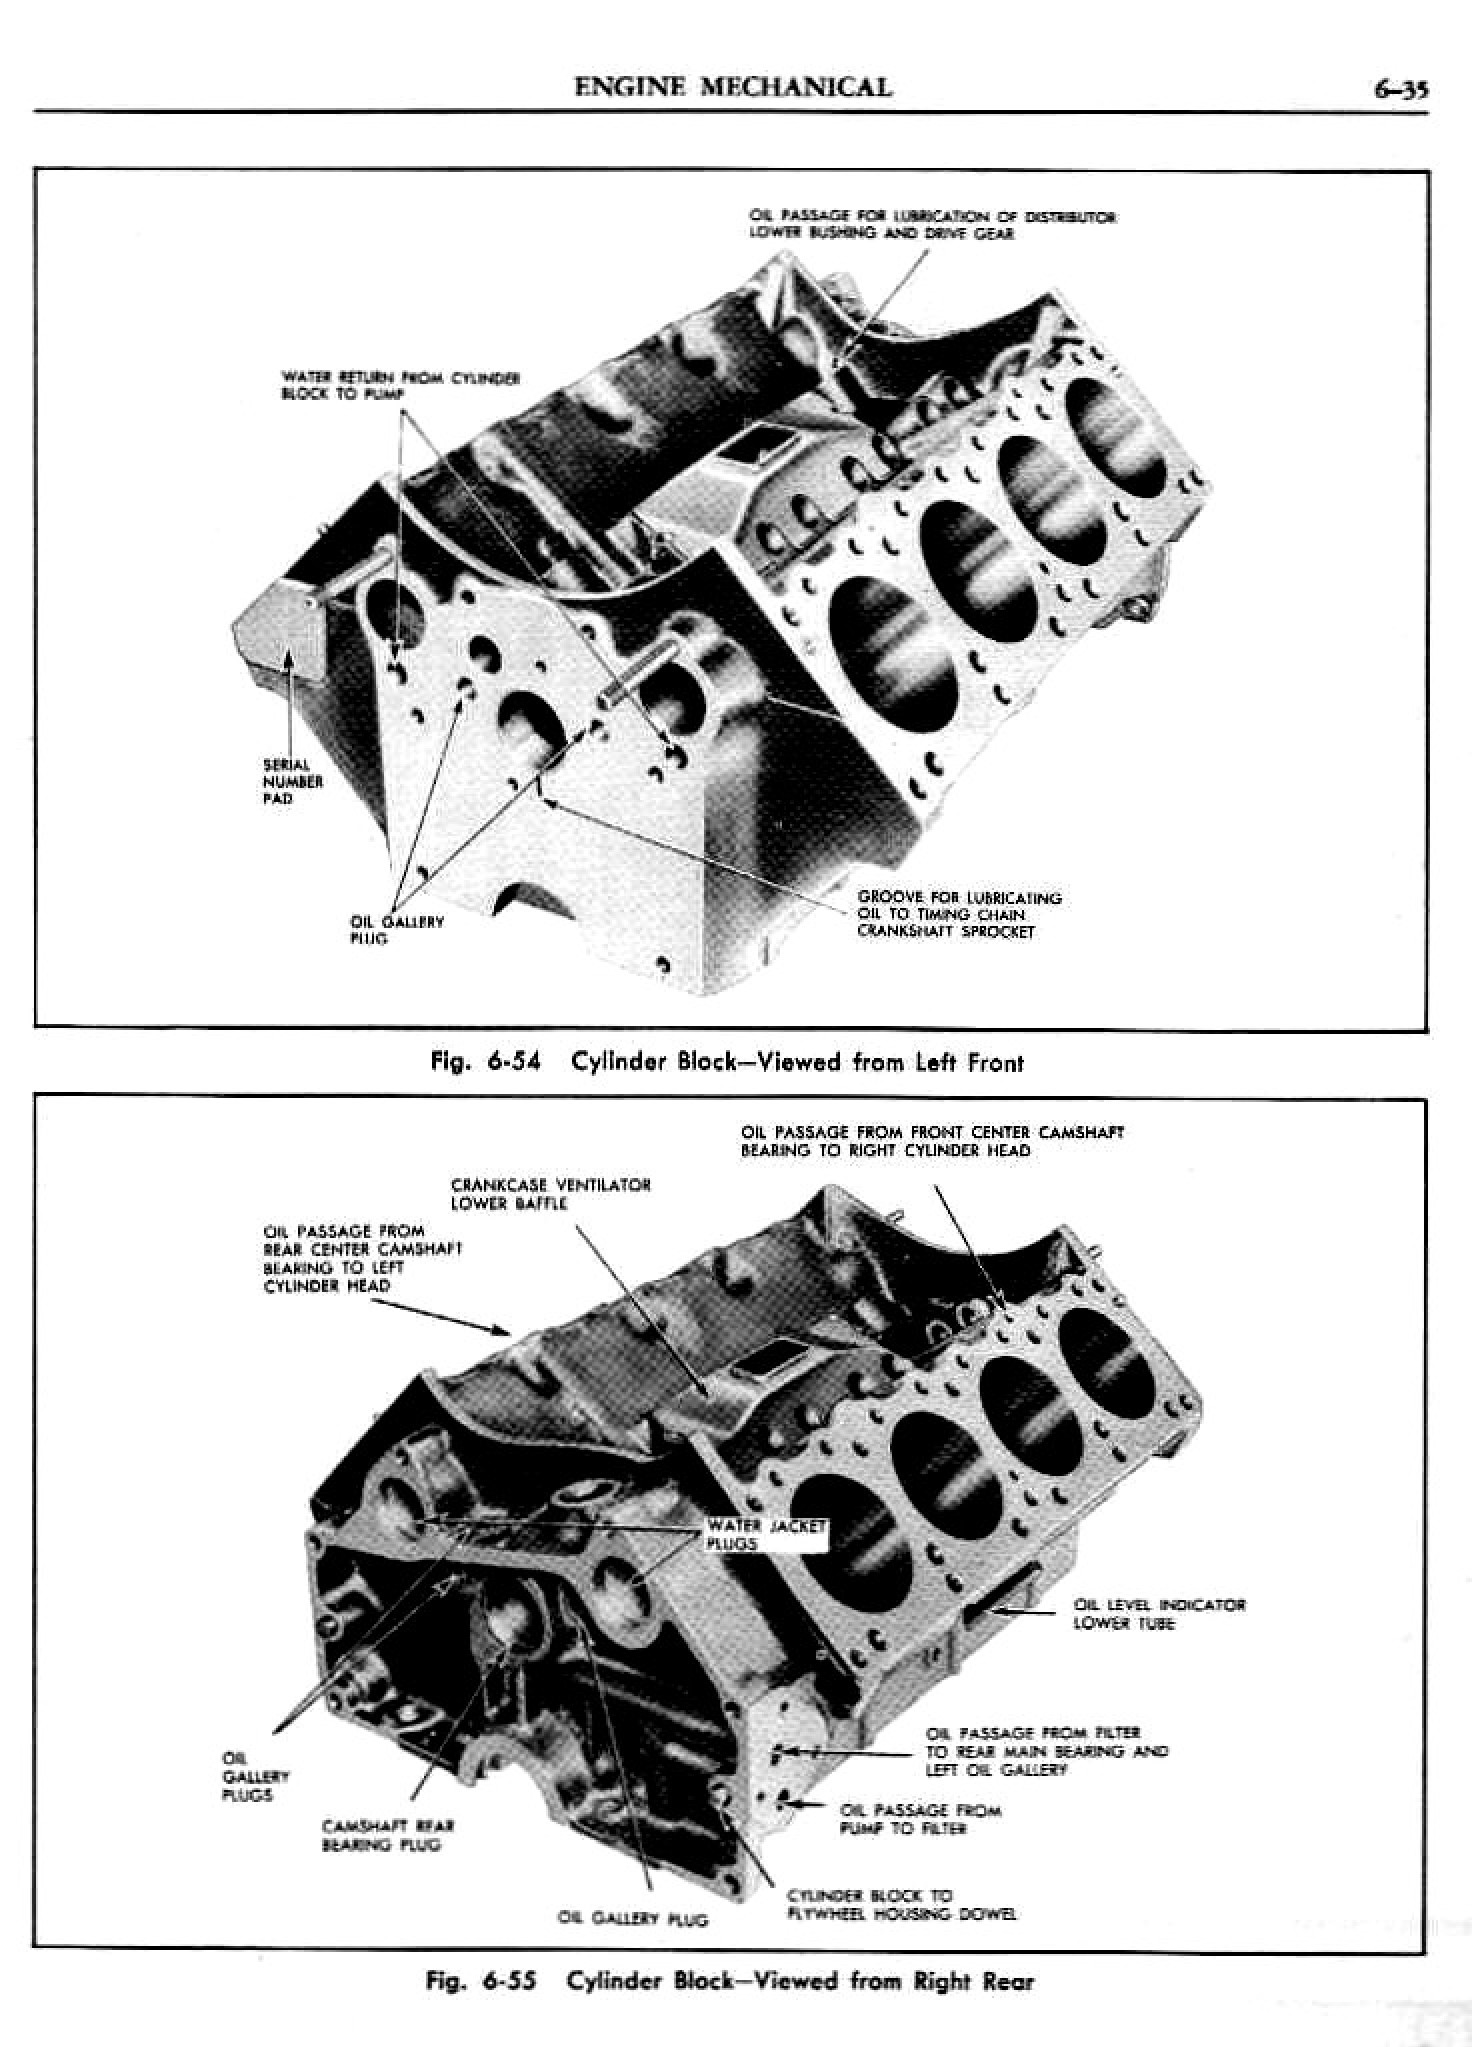 1956 Pontiac Shop Manual- Engine Page 36 of 56